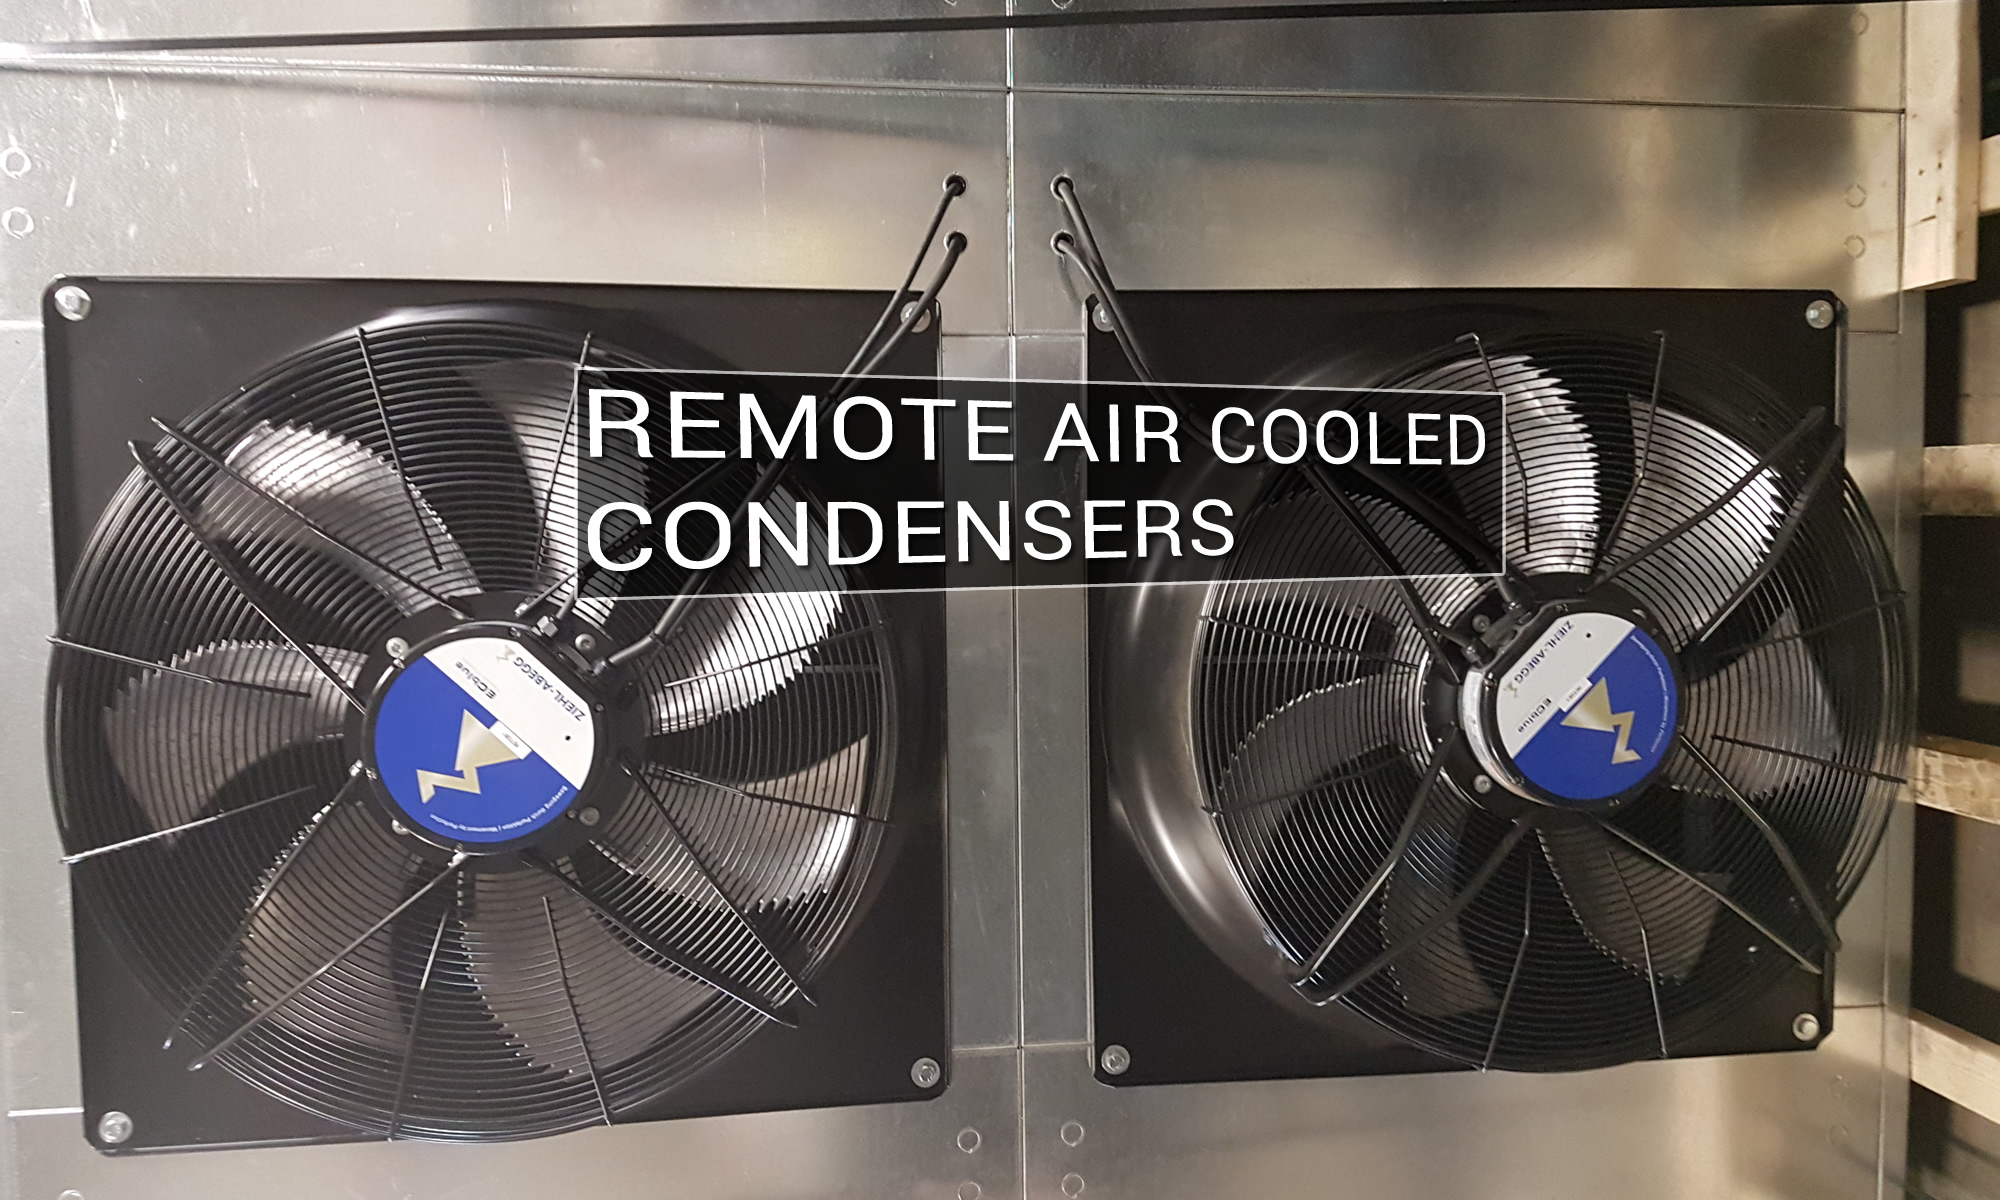 Remote Air Cooled Condensers